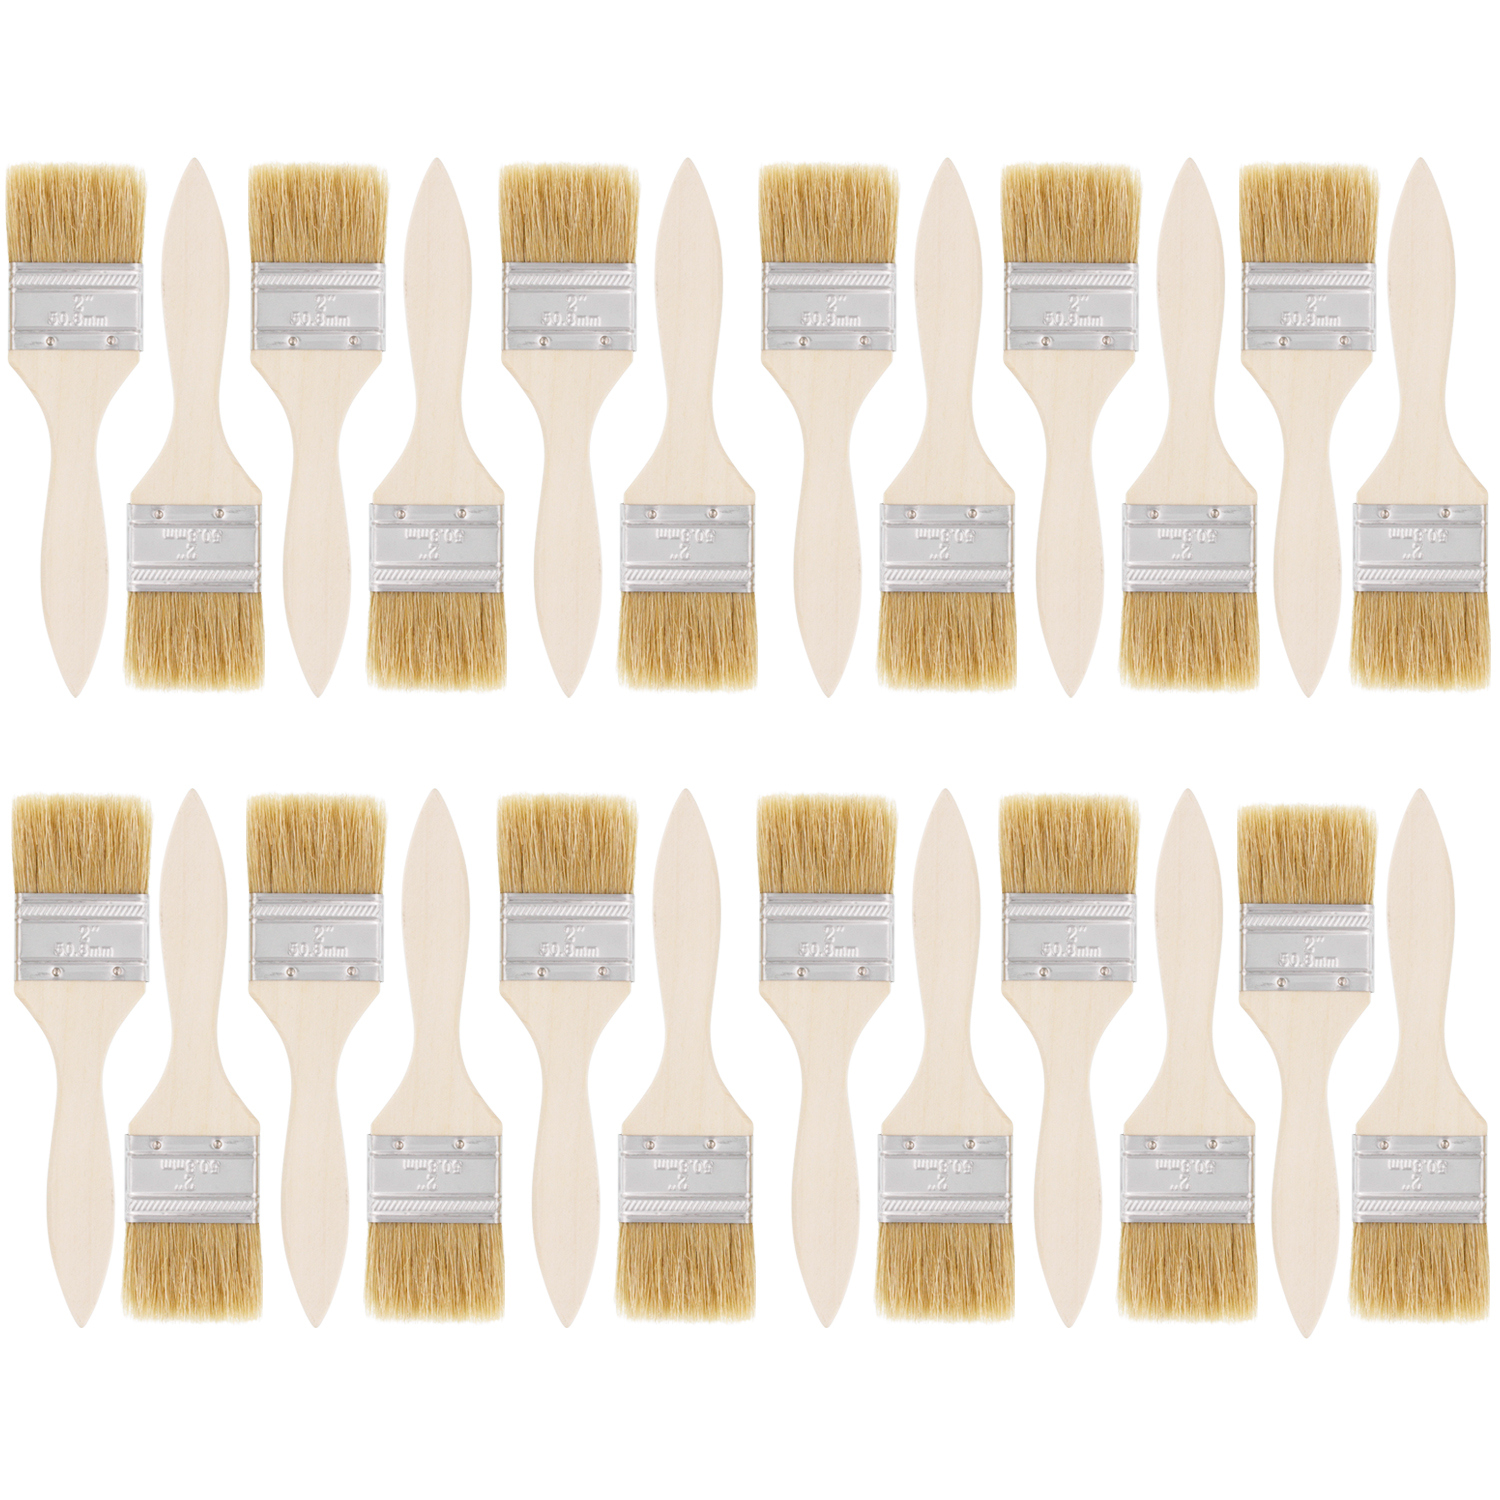 US Art Supply 24 Pack of 2 inch Paint and Chip Paint Brushes for Paint, Stains, Varnishes, Glues, and Gesso